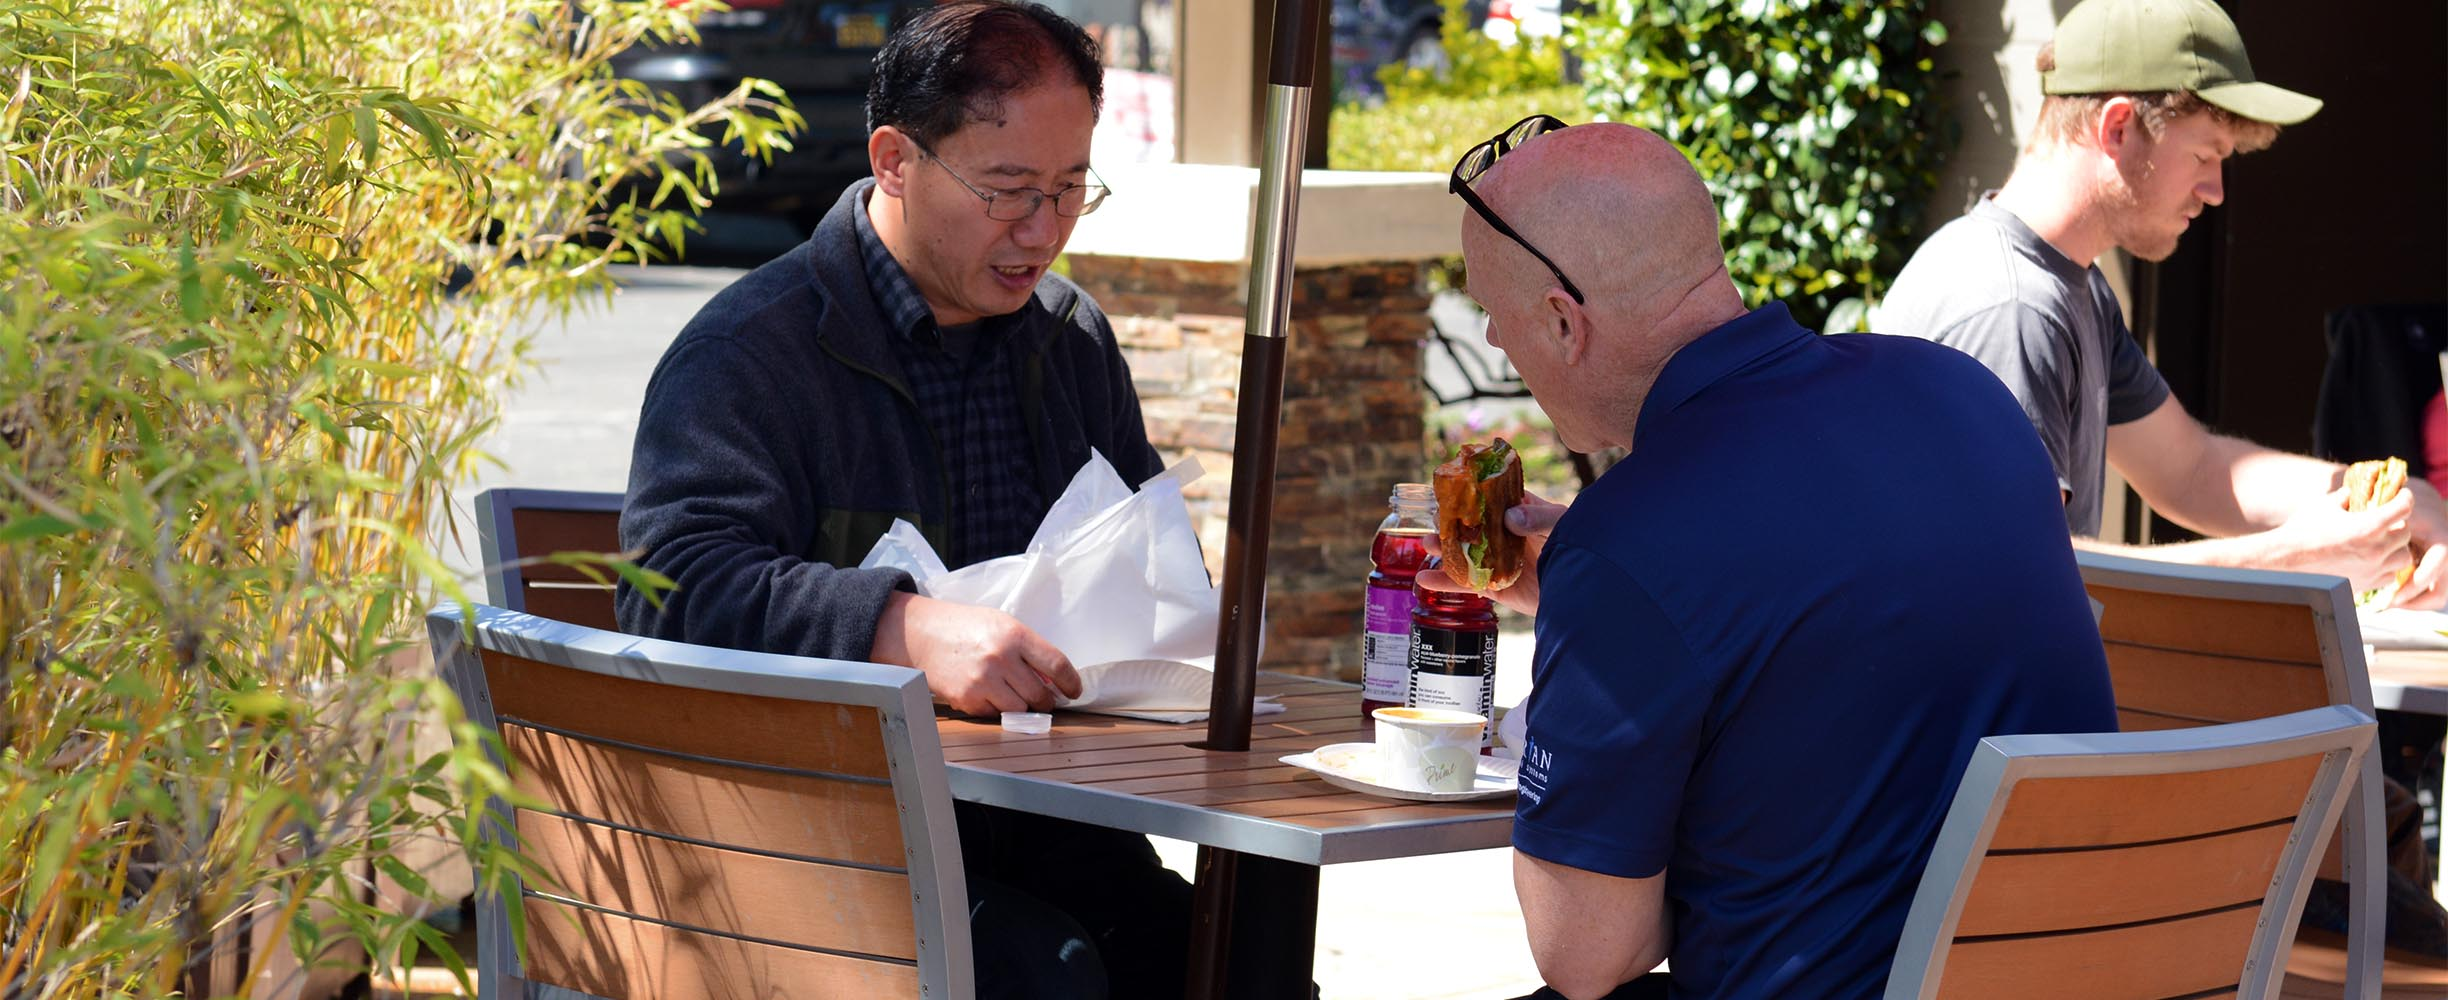 Our clients love the patio sitting to enjoy their sandwiches in Palo Alto